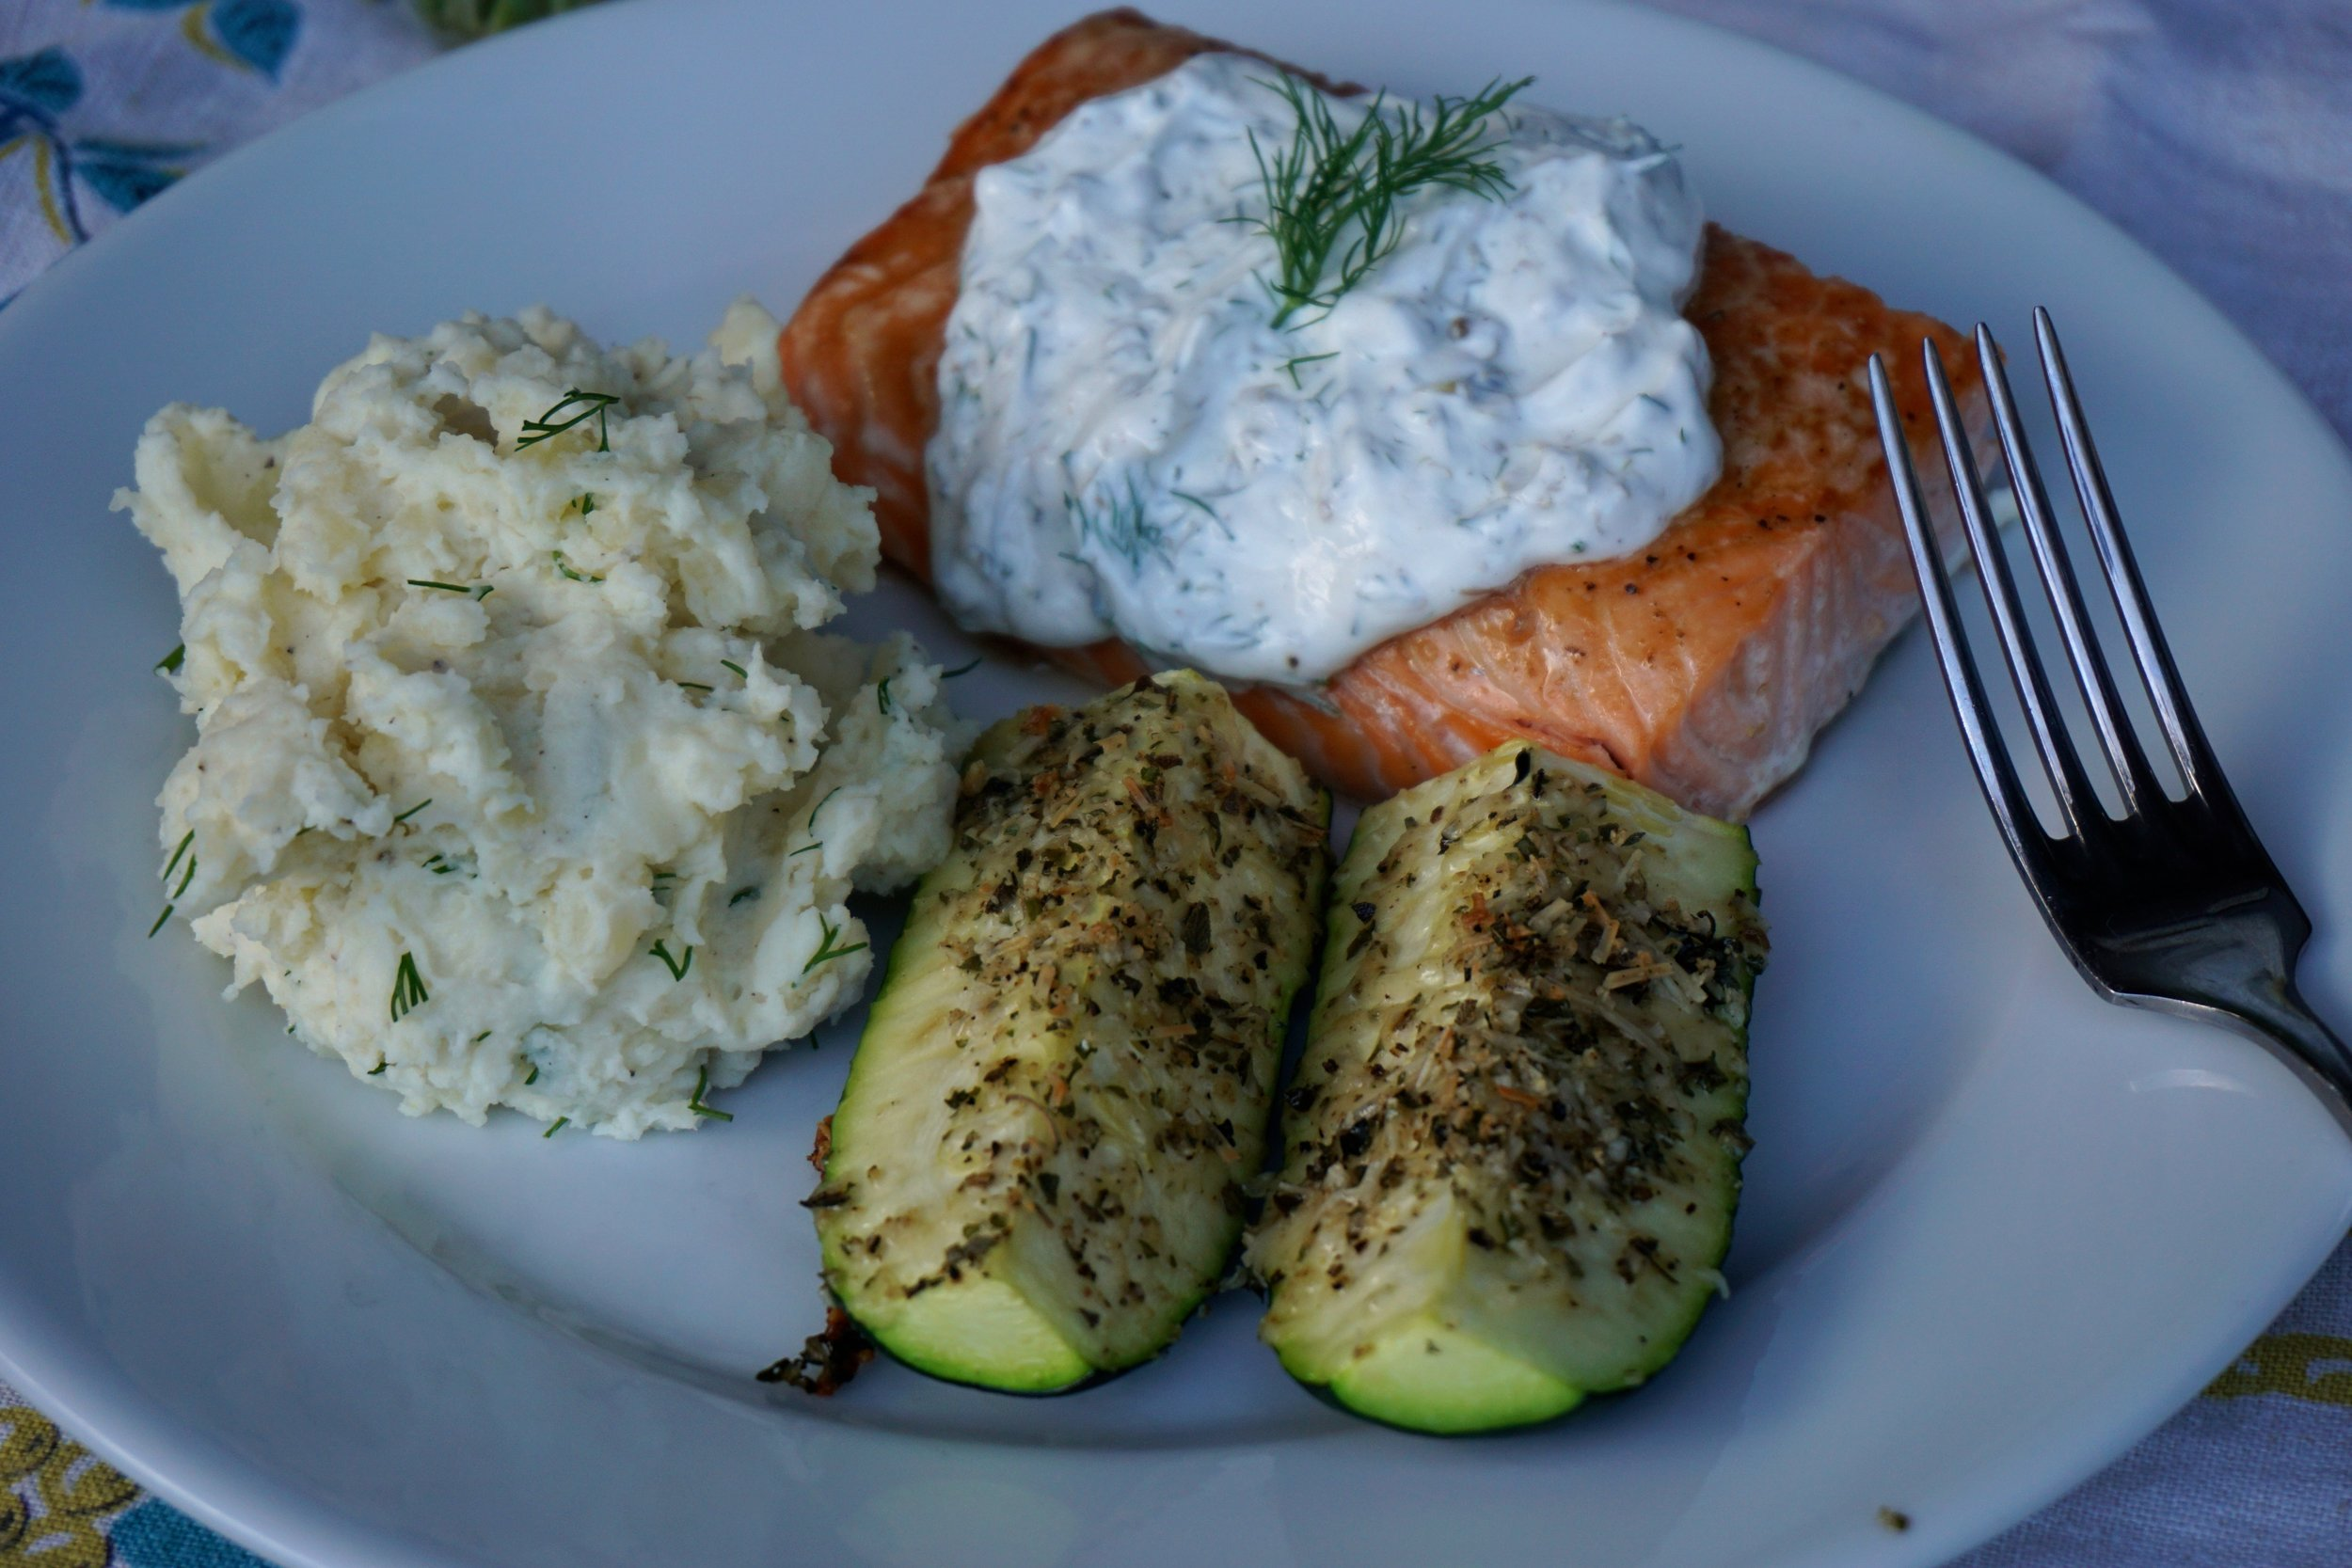 Dilled Mashed Potatoes, Herbed Parmesan Zucchini, and Salmon with Creamy Dill Sauce is ready to serve in just 45 minutes and uses just a few ingredients.